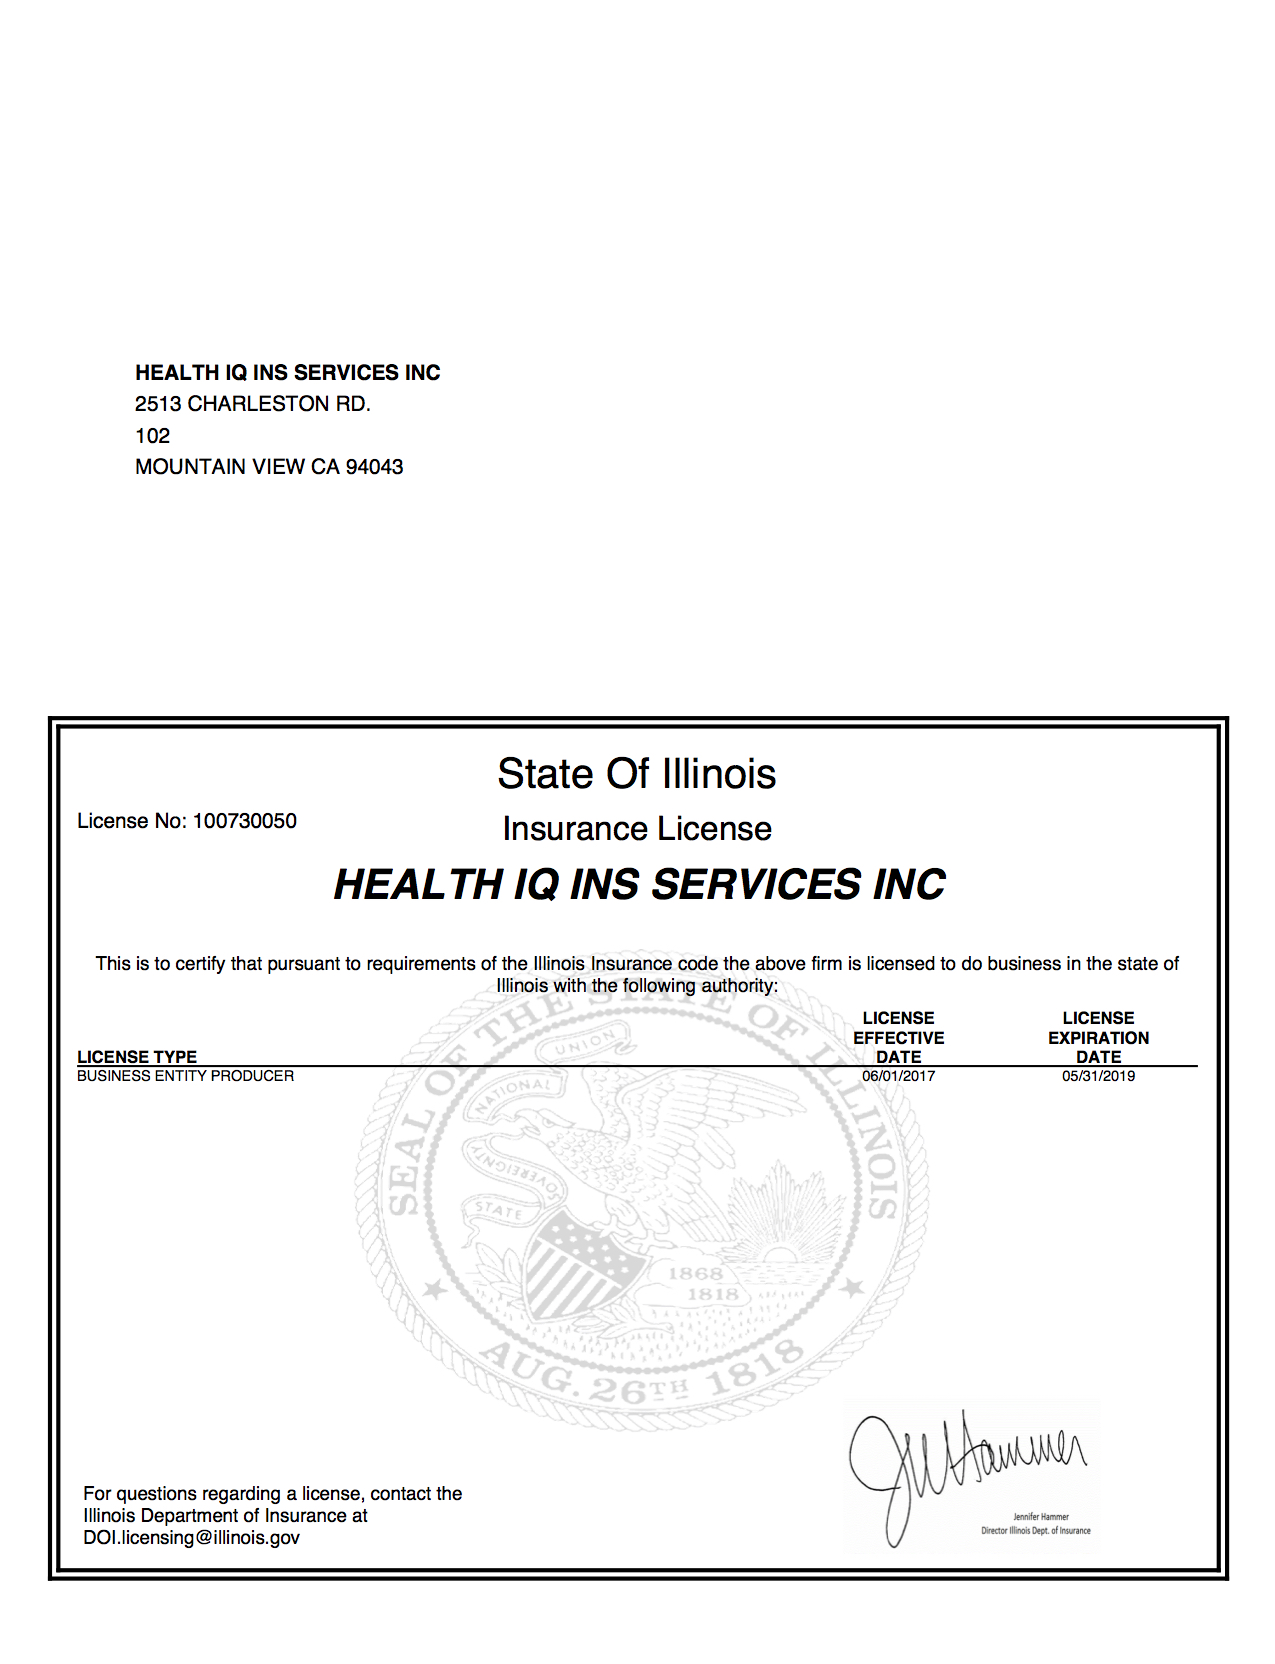 Medicare and Life Special Insurance Savings   Health IQ